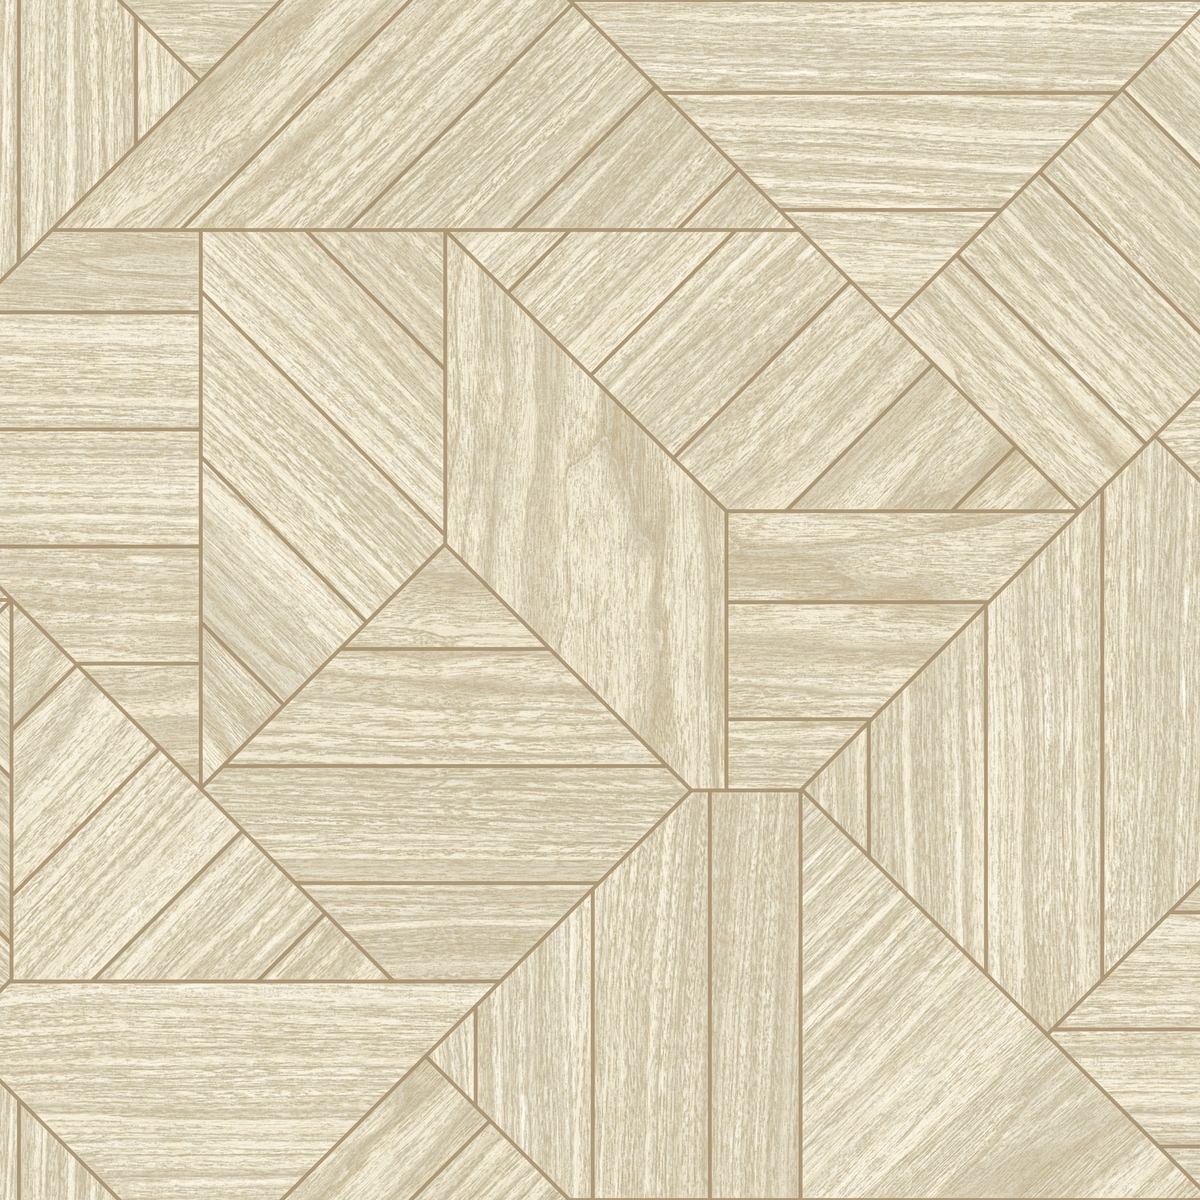 Details About York Wallcoverings Ho3374 Wood Geometric Wallpaper Tailored Collection Beige